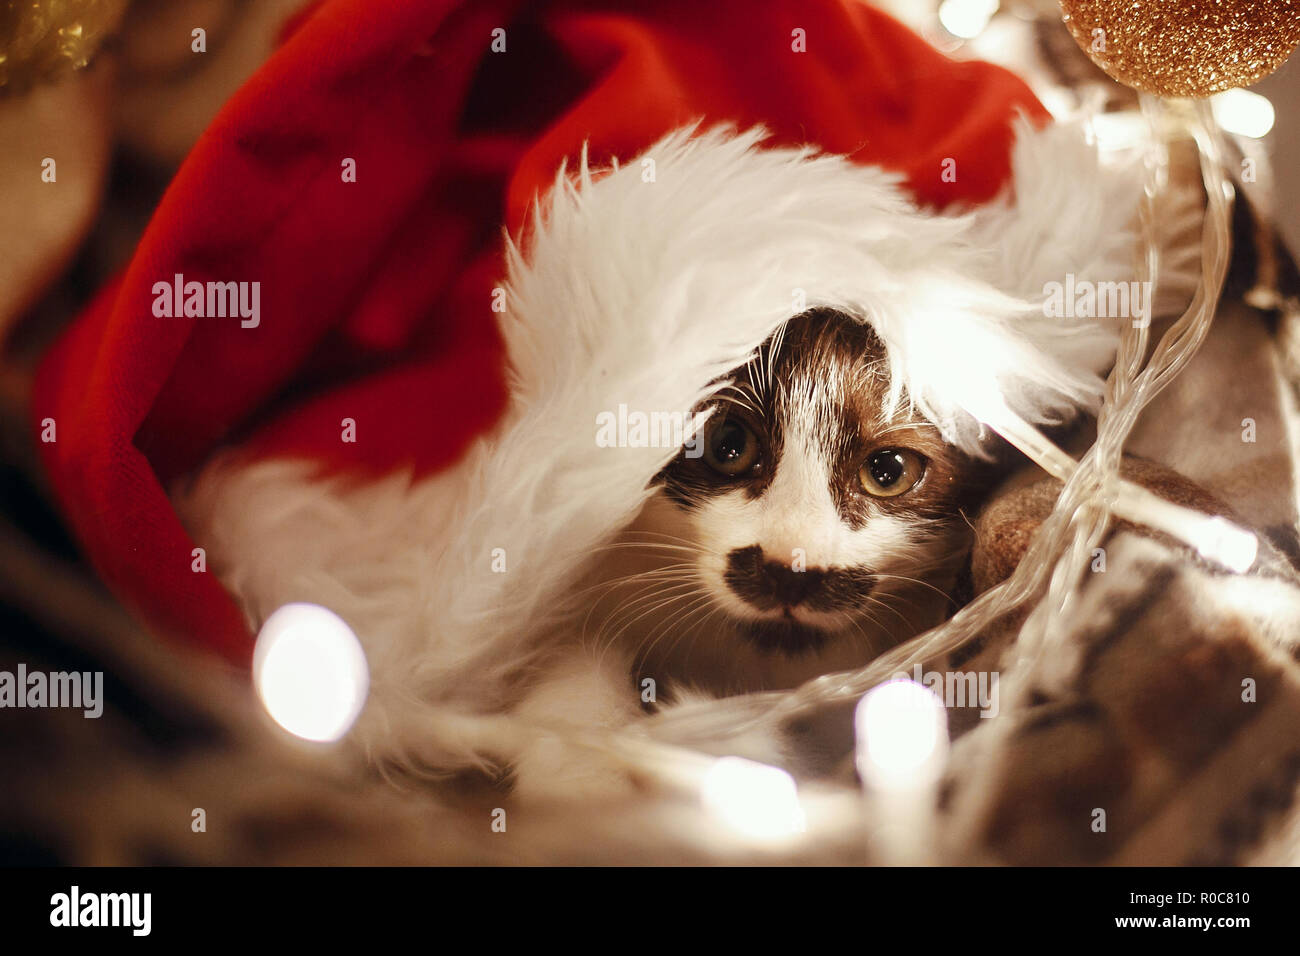 Cute kitty in santa hat sitting in basket with lights and ornaments under christmas tree in festive room. Merry Christmas concept. Adorable funny kitt - Stock Image